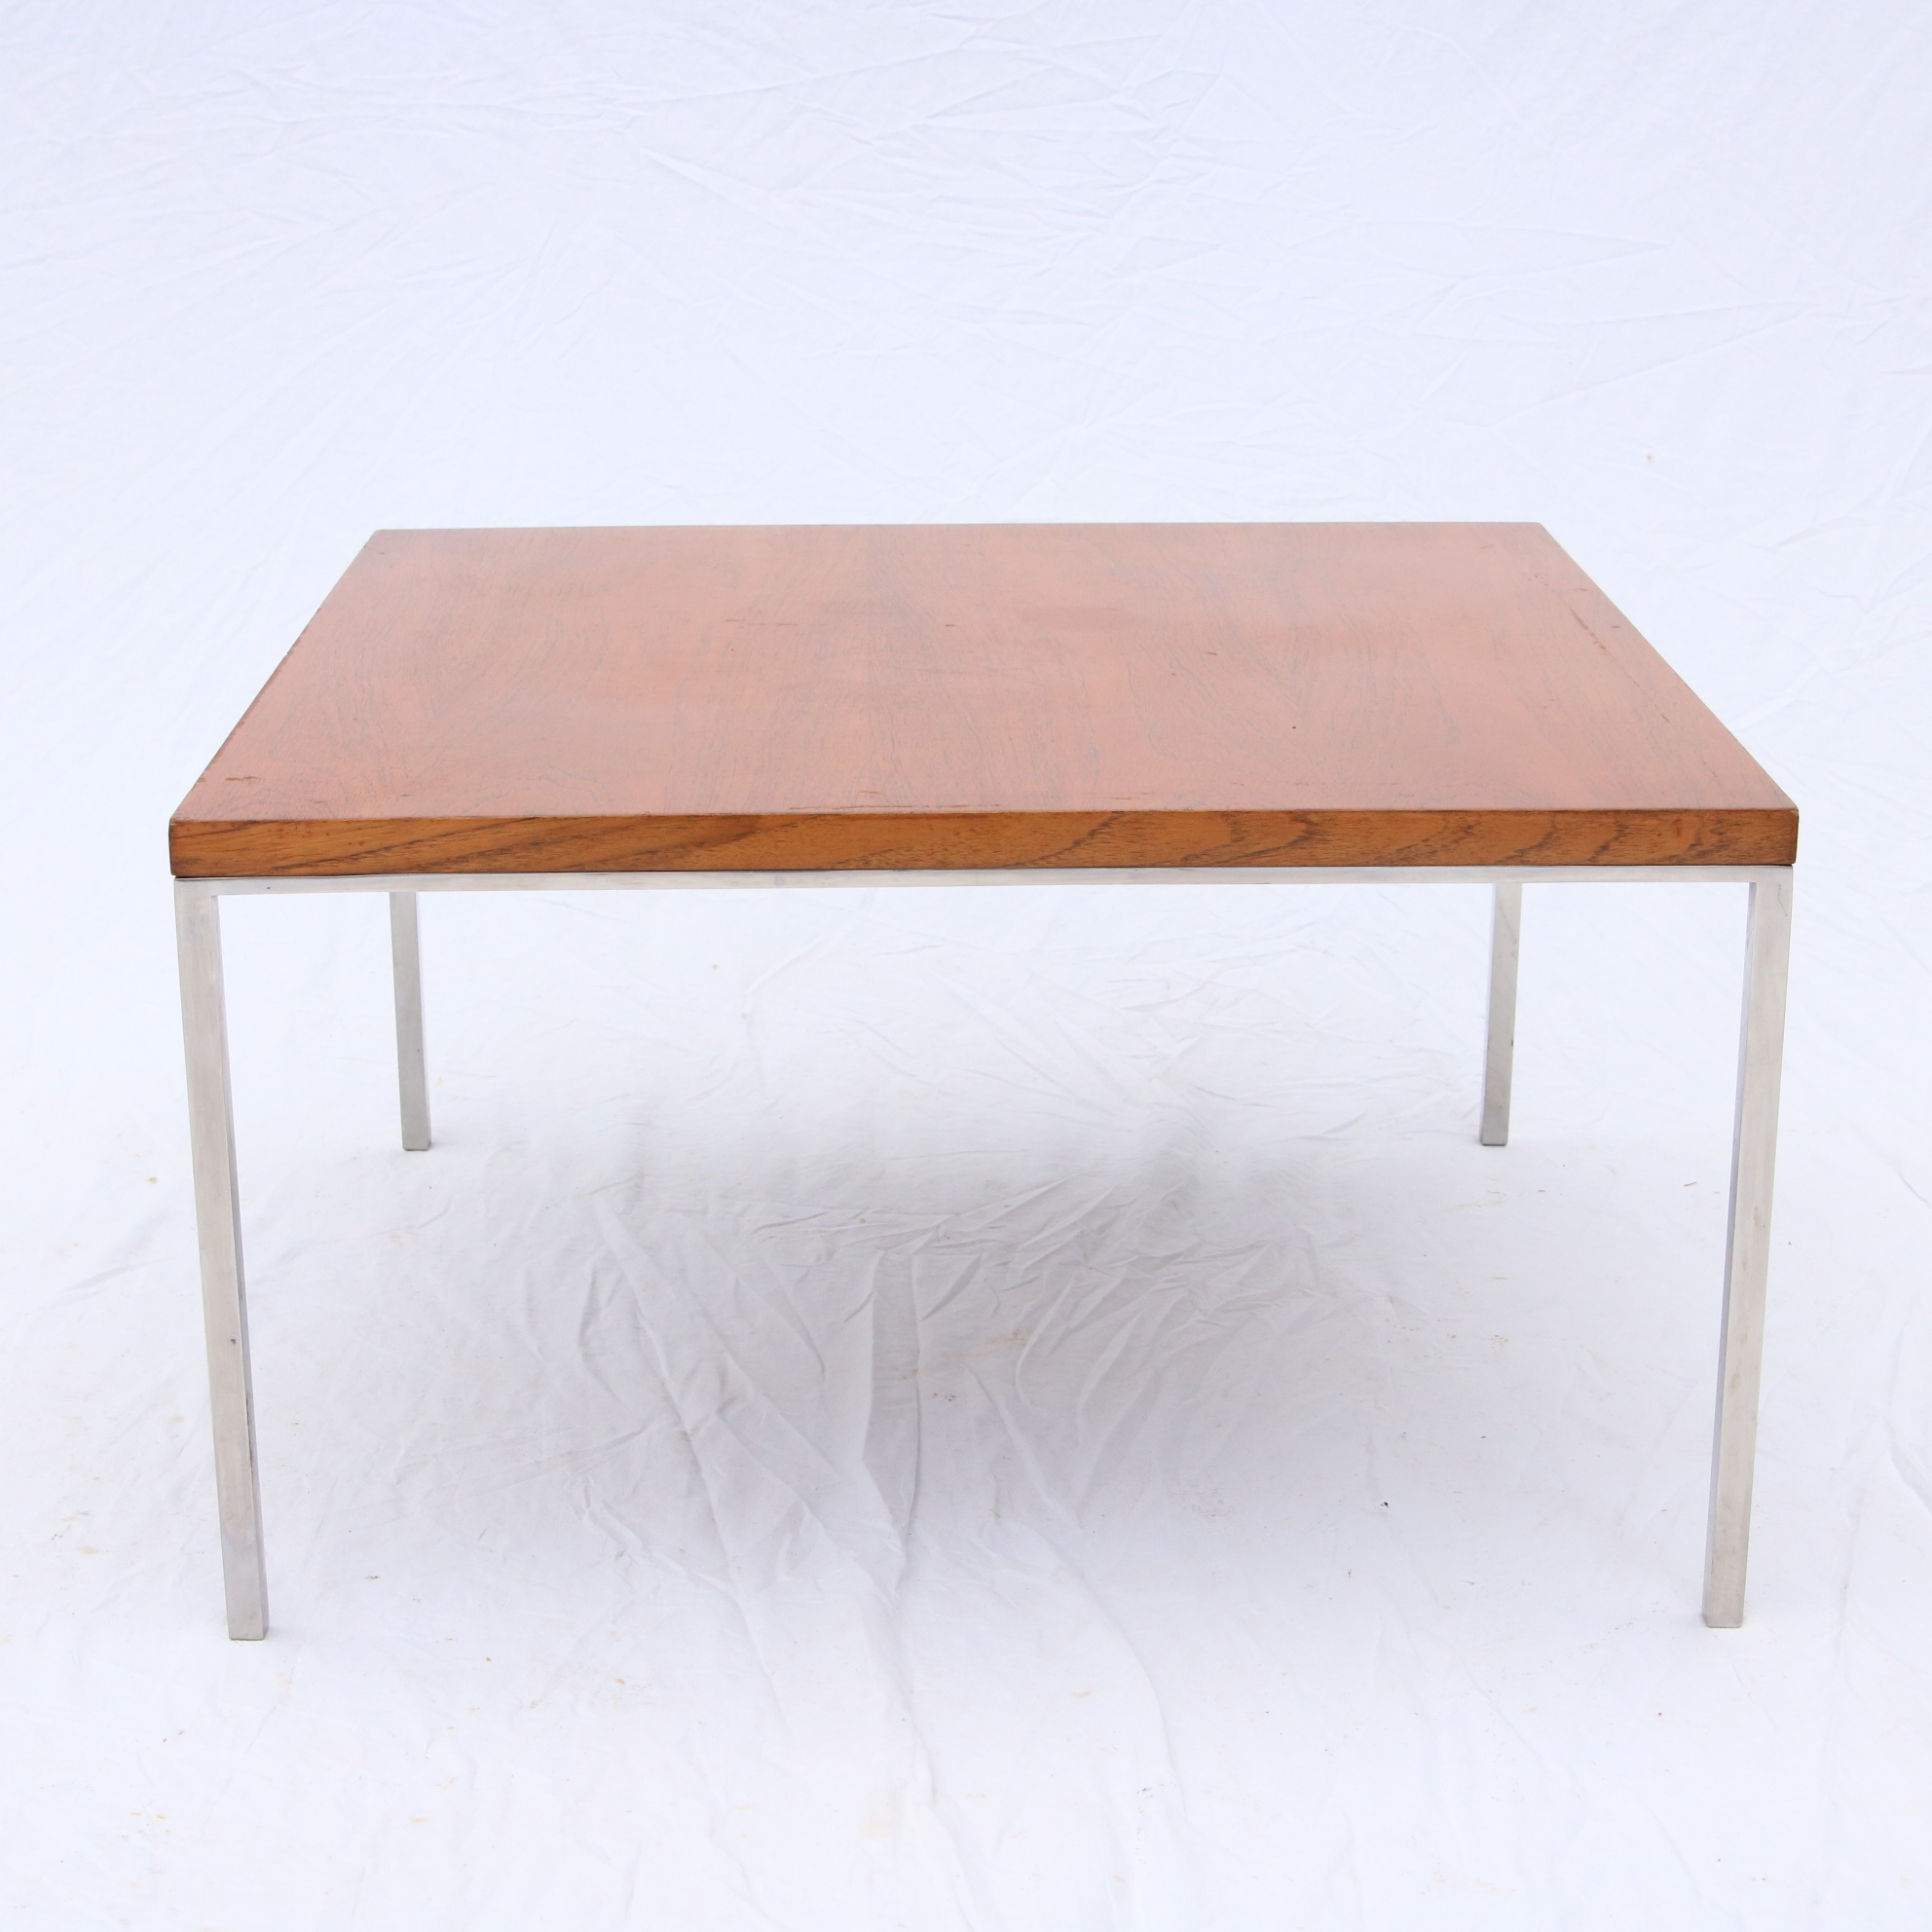 Vtg Chrome And Walnut Coffee Table In The Style Of Florence Knoll Modern Design Lee Dowdy Antiques